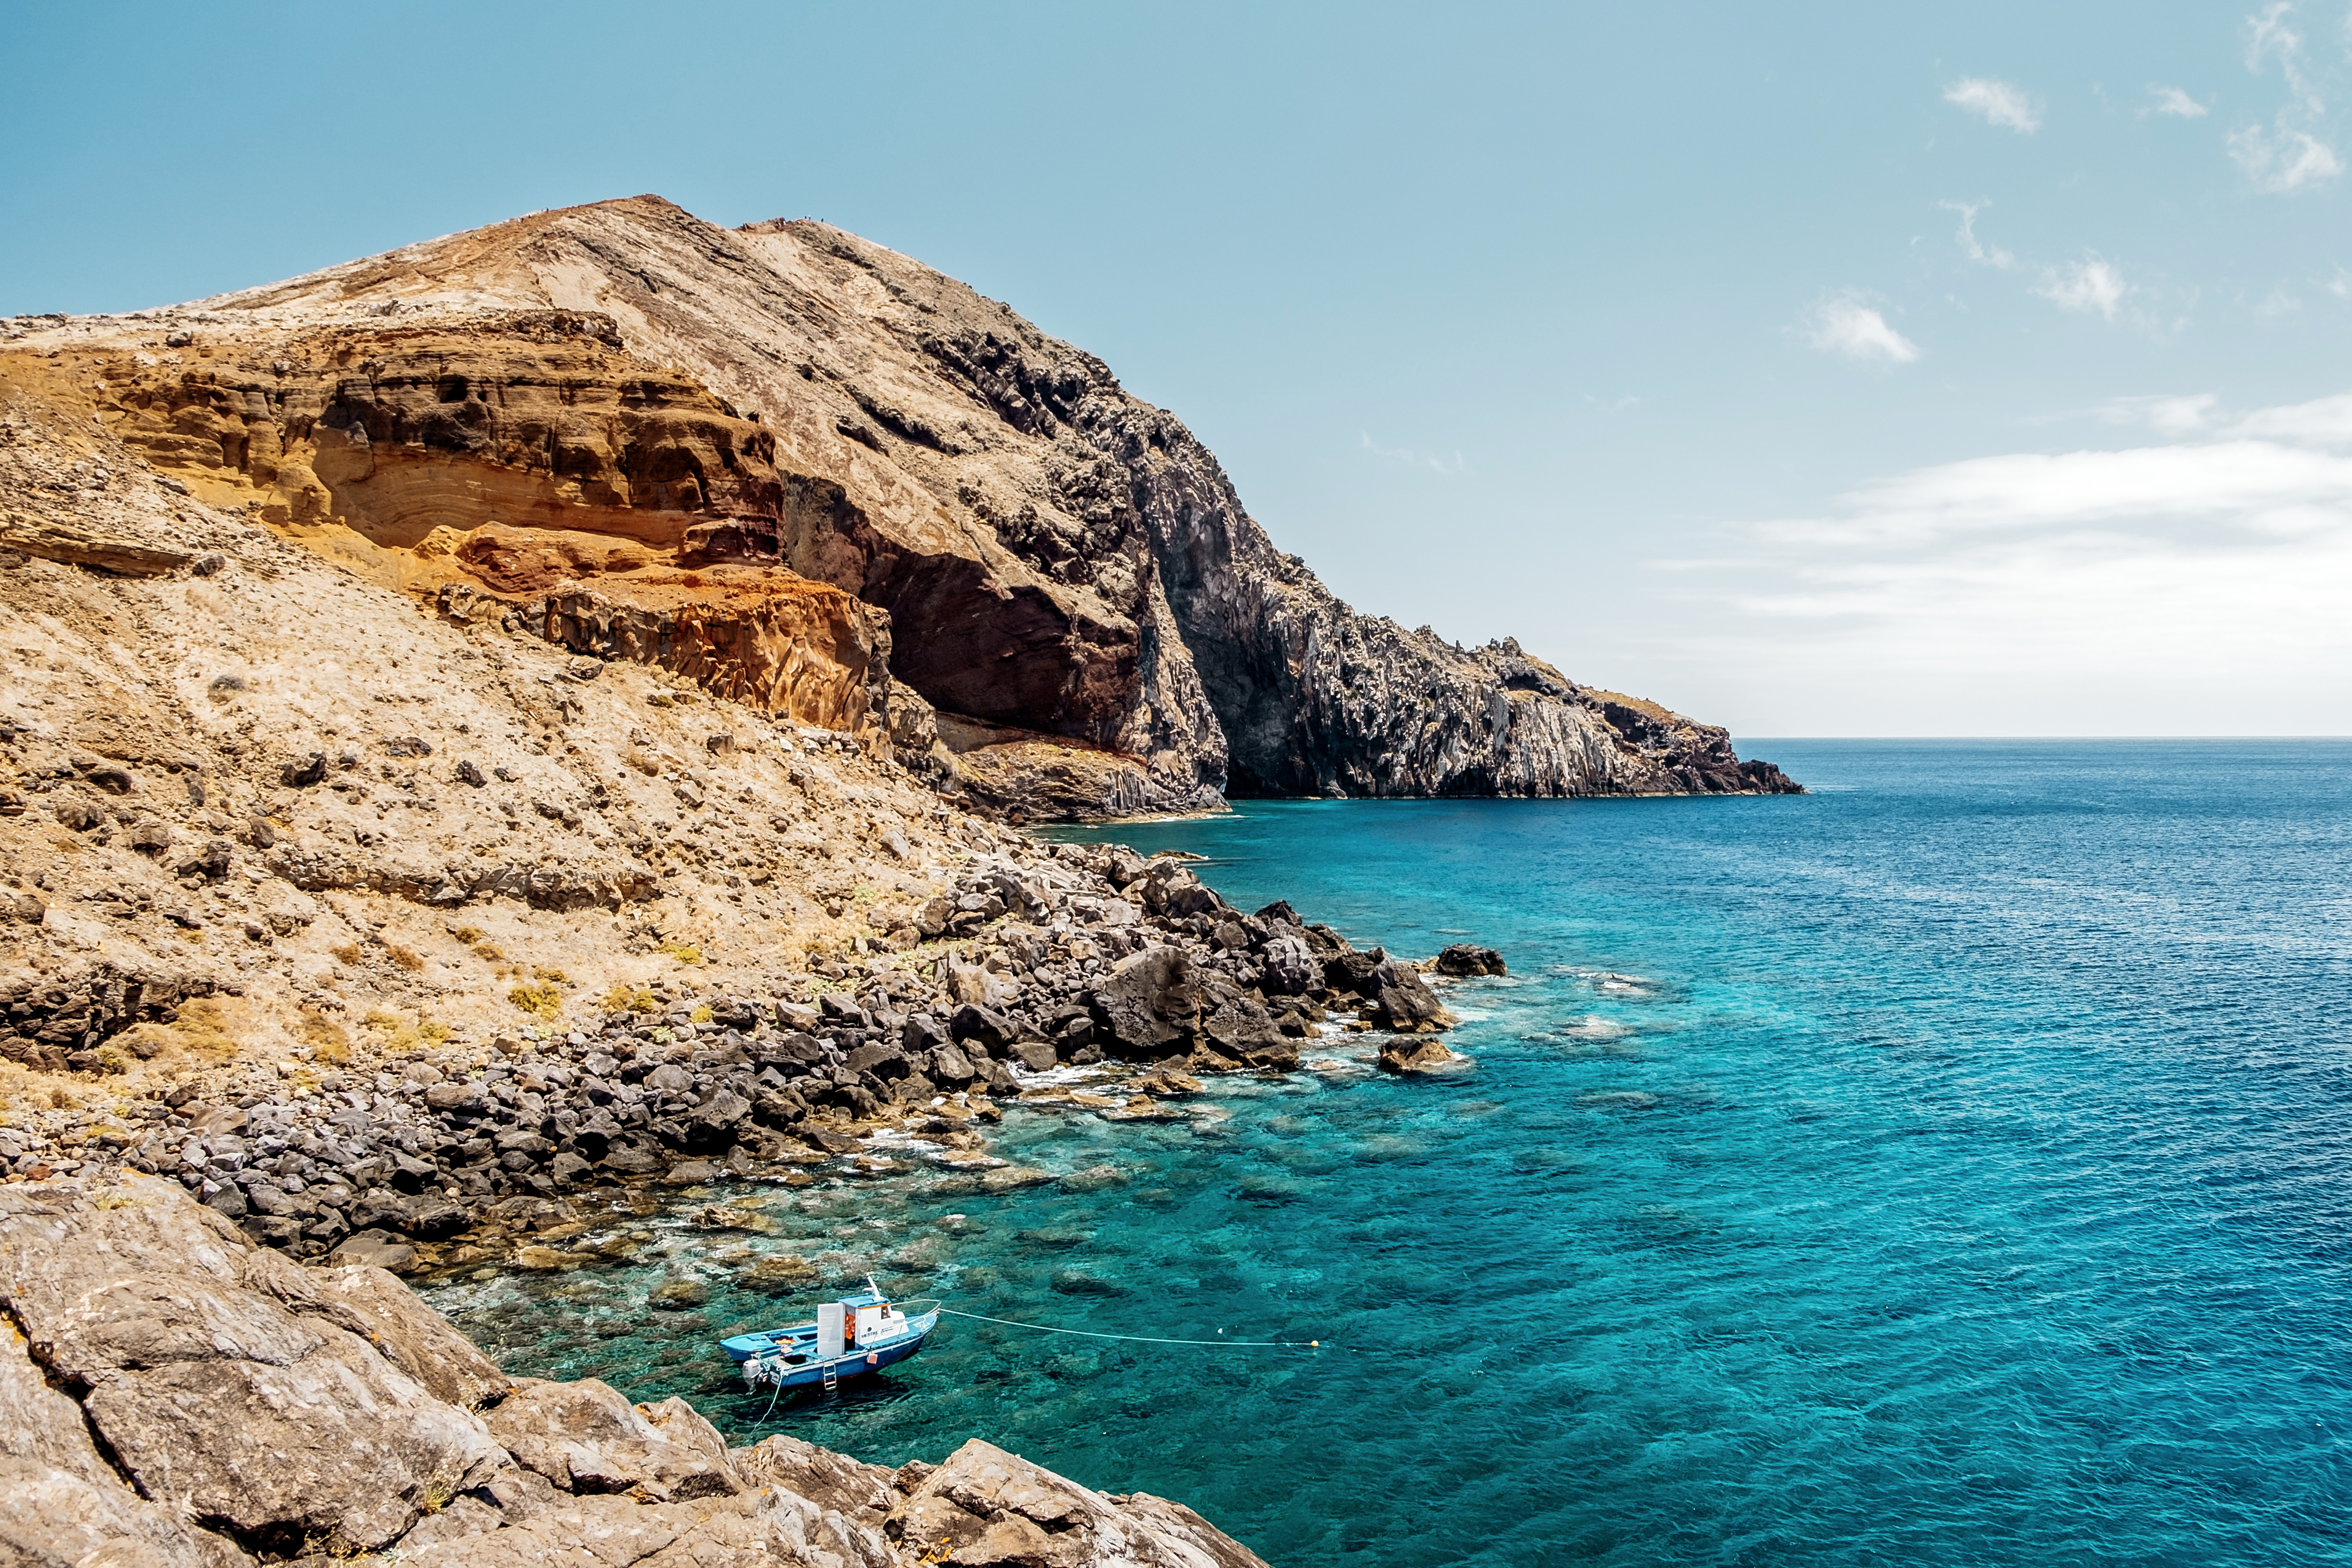 Beautiful coast of the island of Madeira Portugal with cliffs